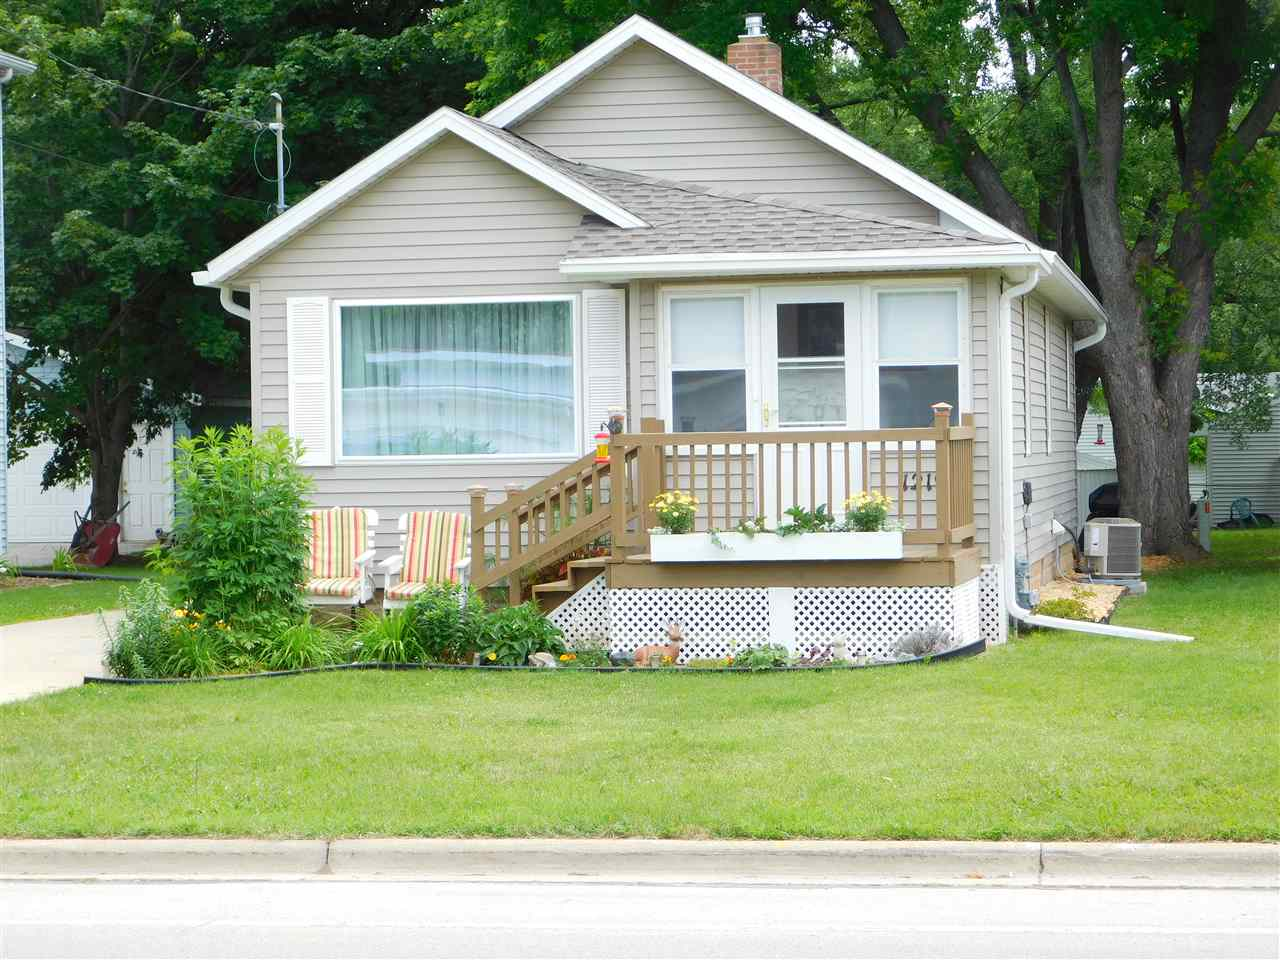 1219 S Baird Street Green Bay Wi 54301 Homes And Real Estate For